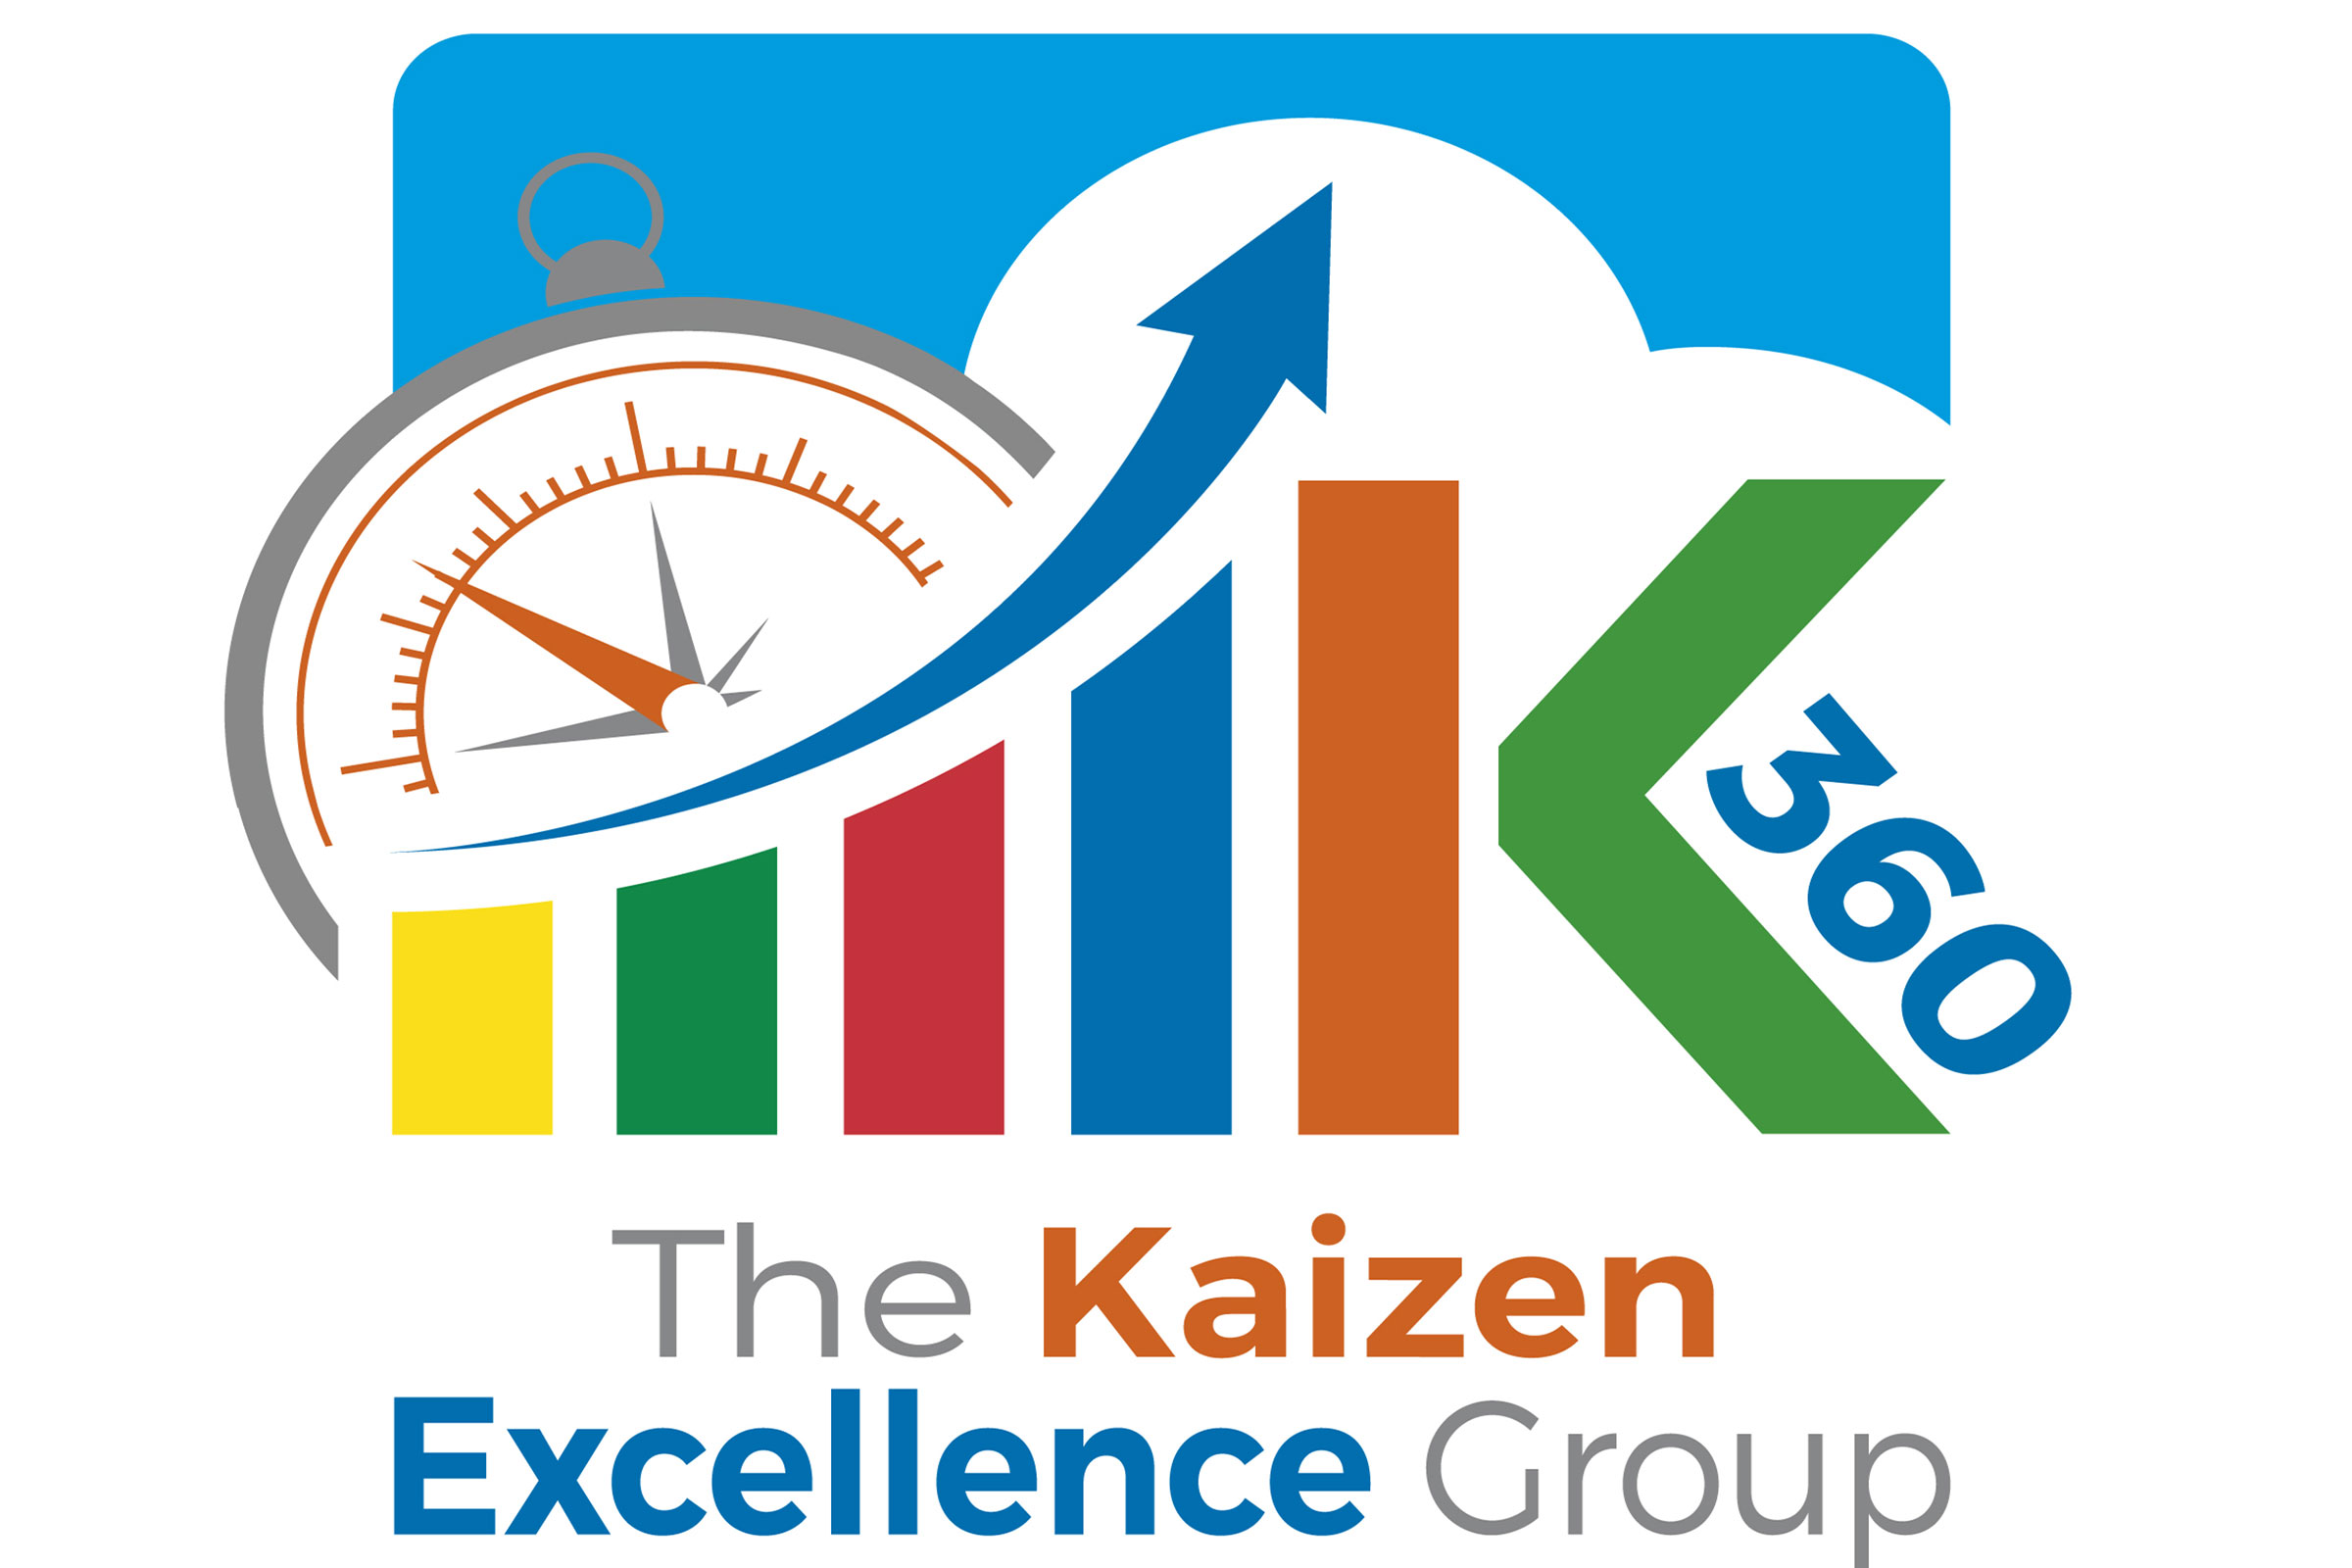 The Kaizen Excellence Group